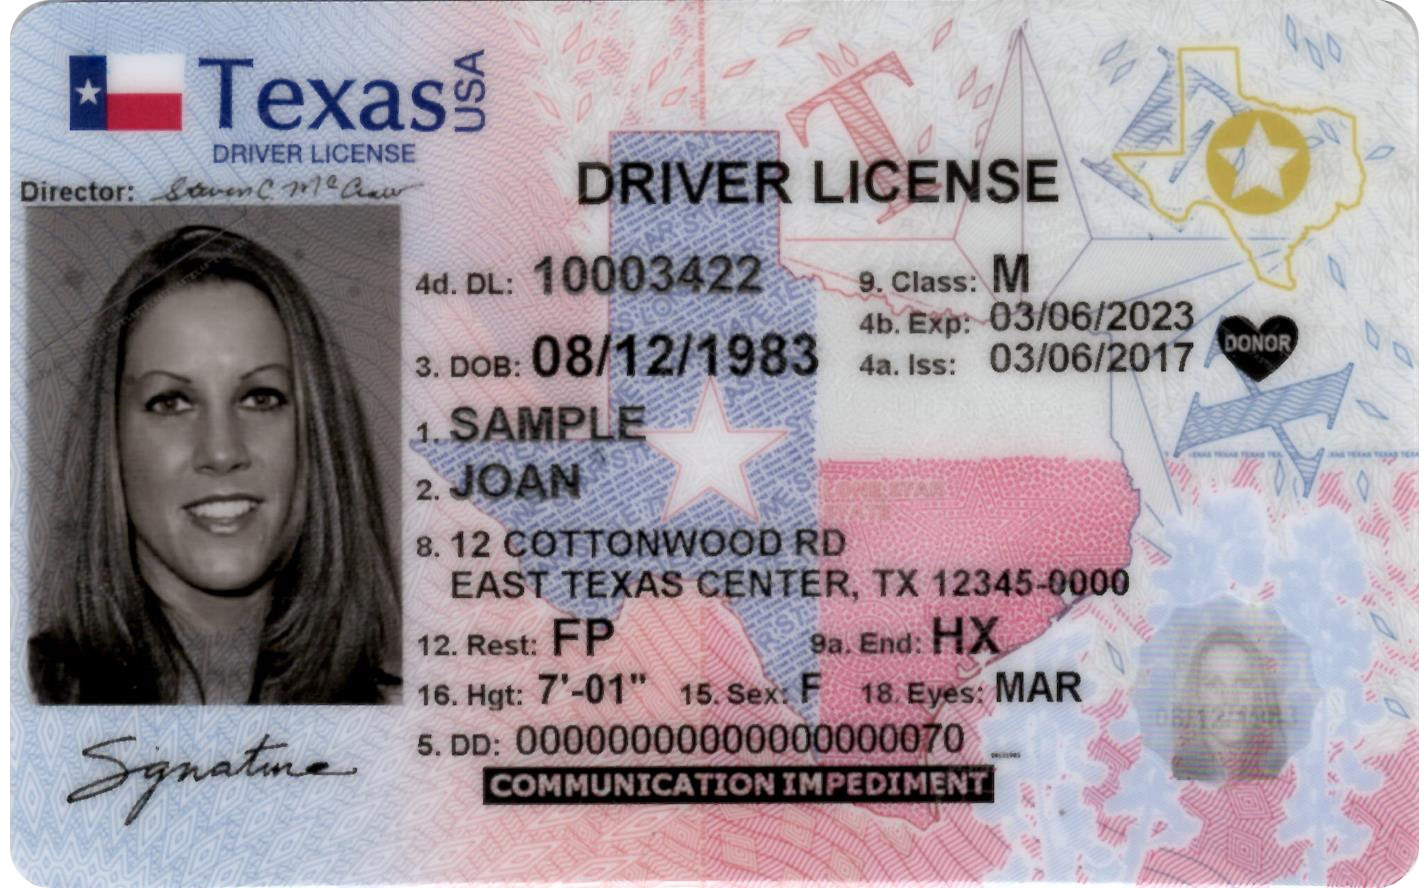 Texas driver license image